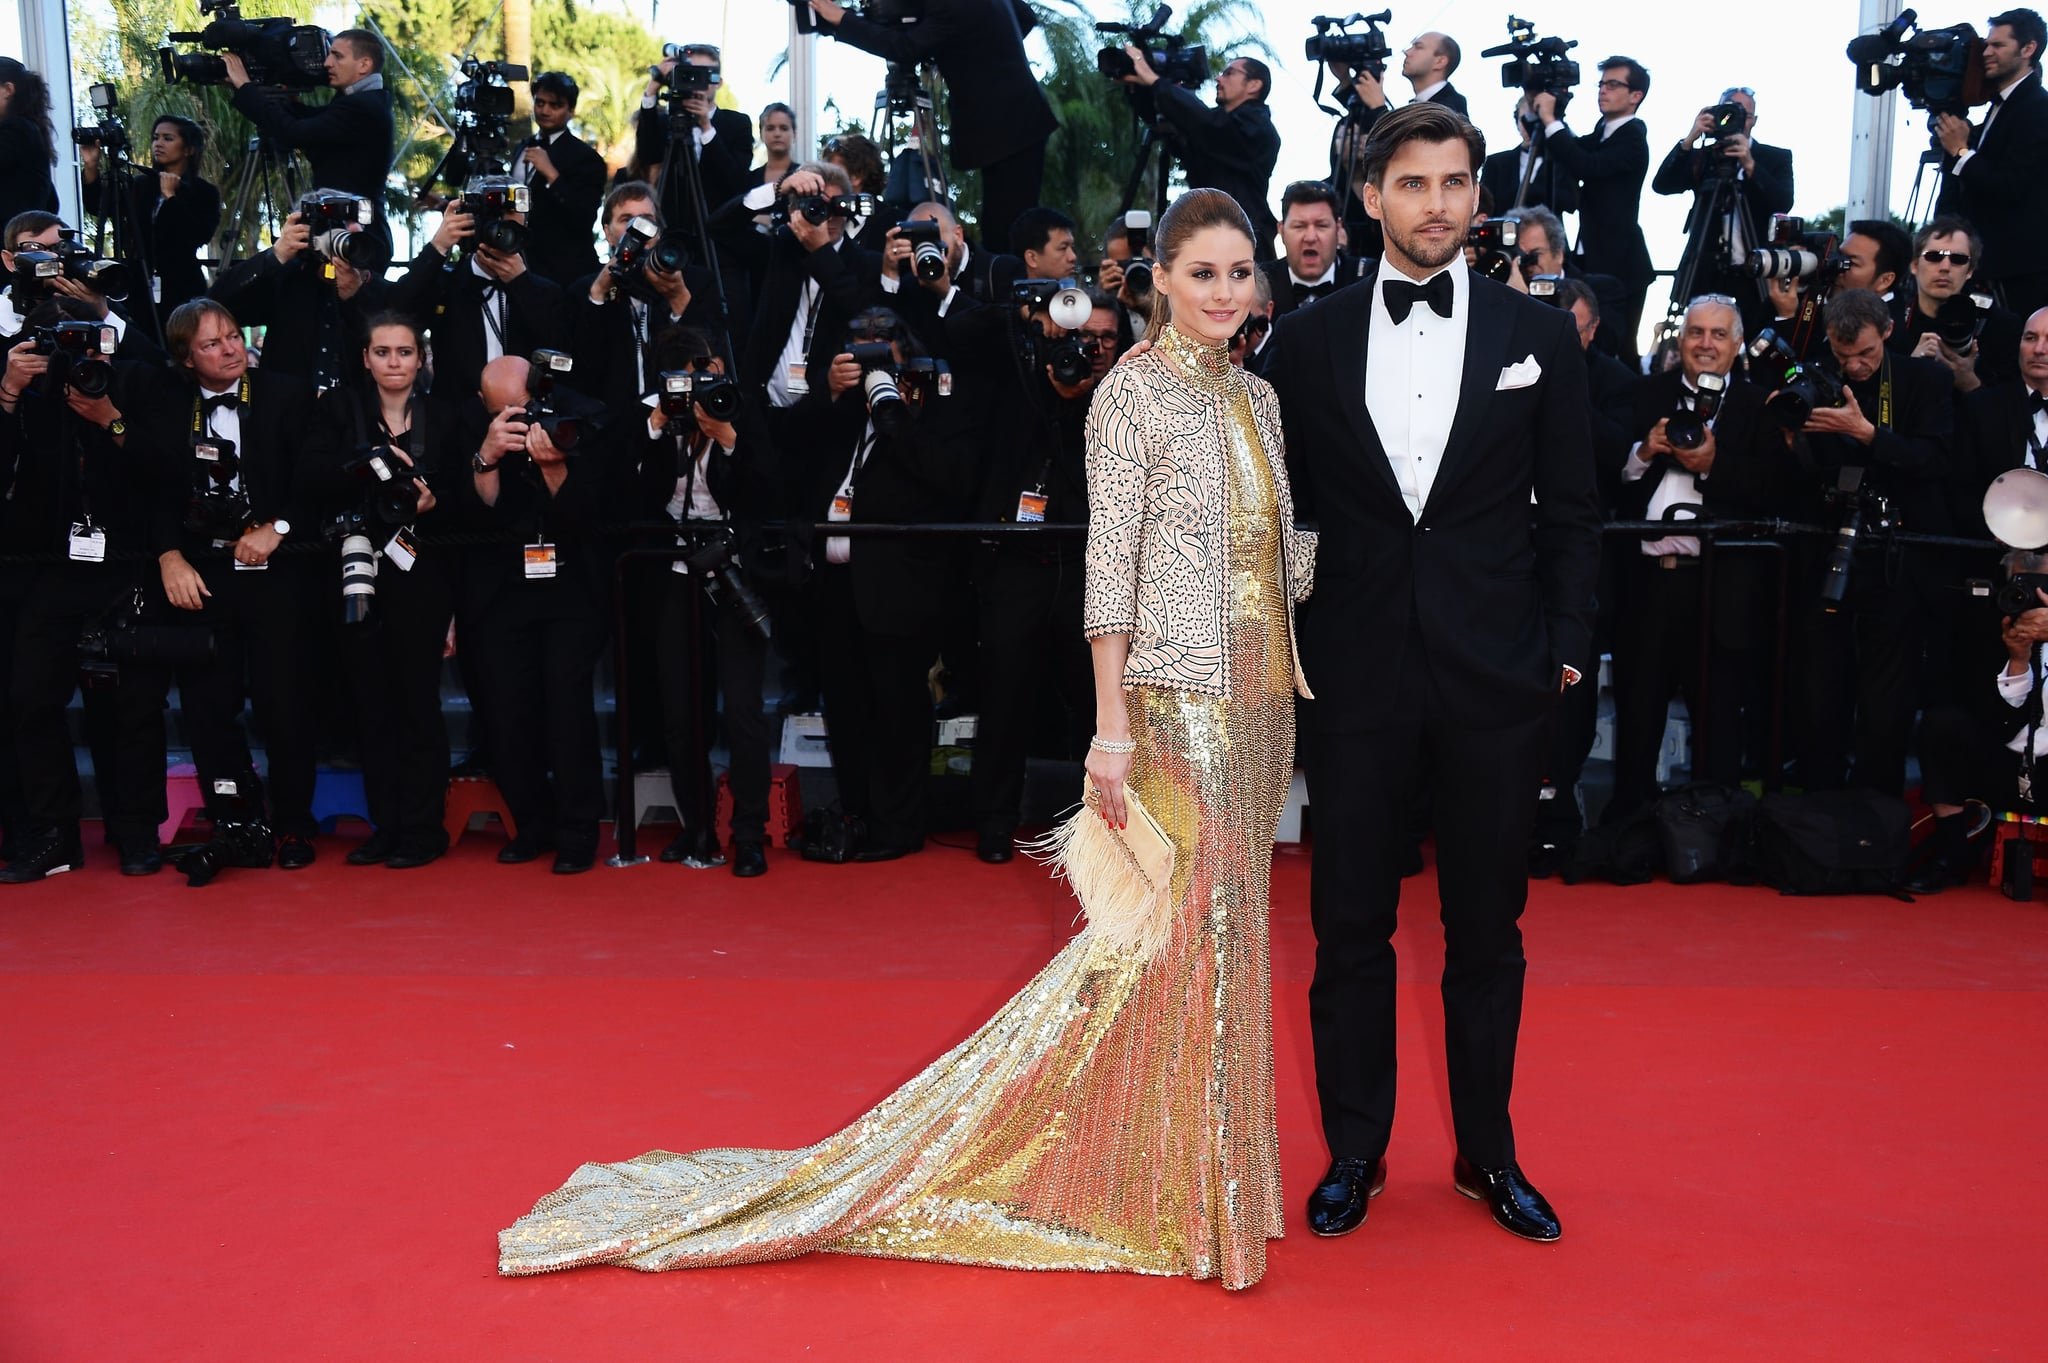 Olivia Palermo and Johannes Huebl posed for a picture on Friday at the premiere of The Immigrant.